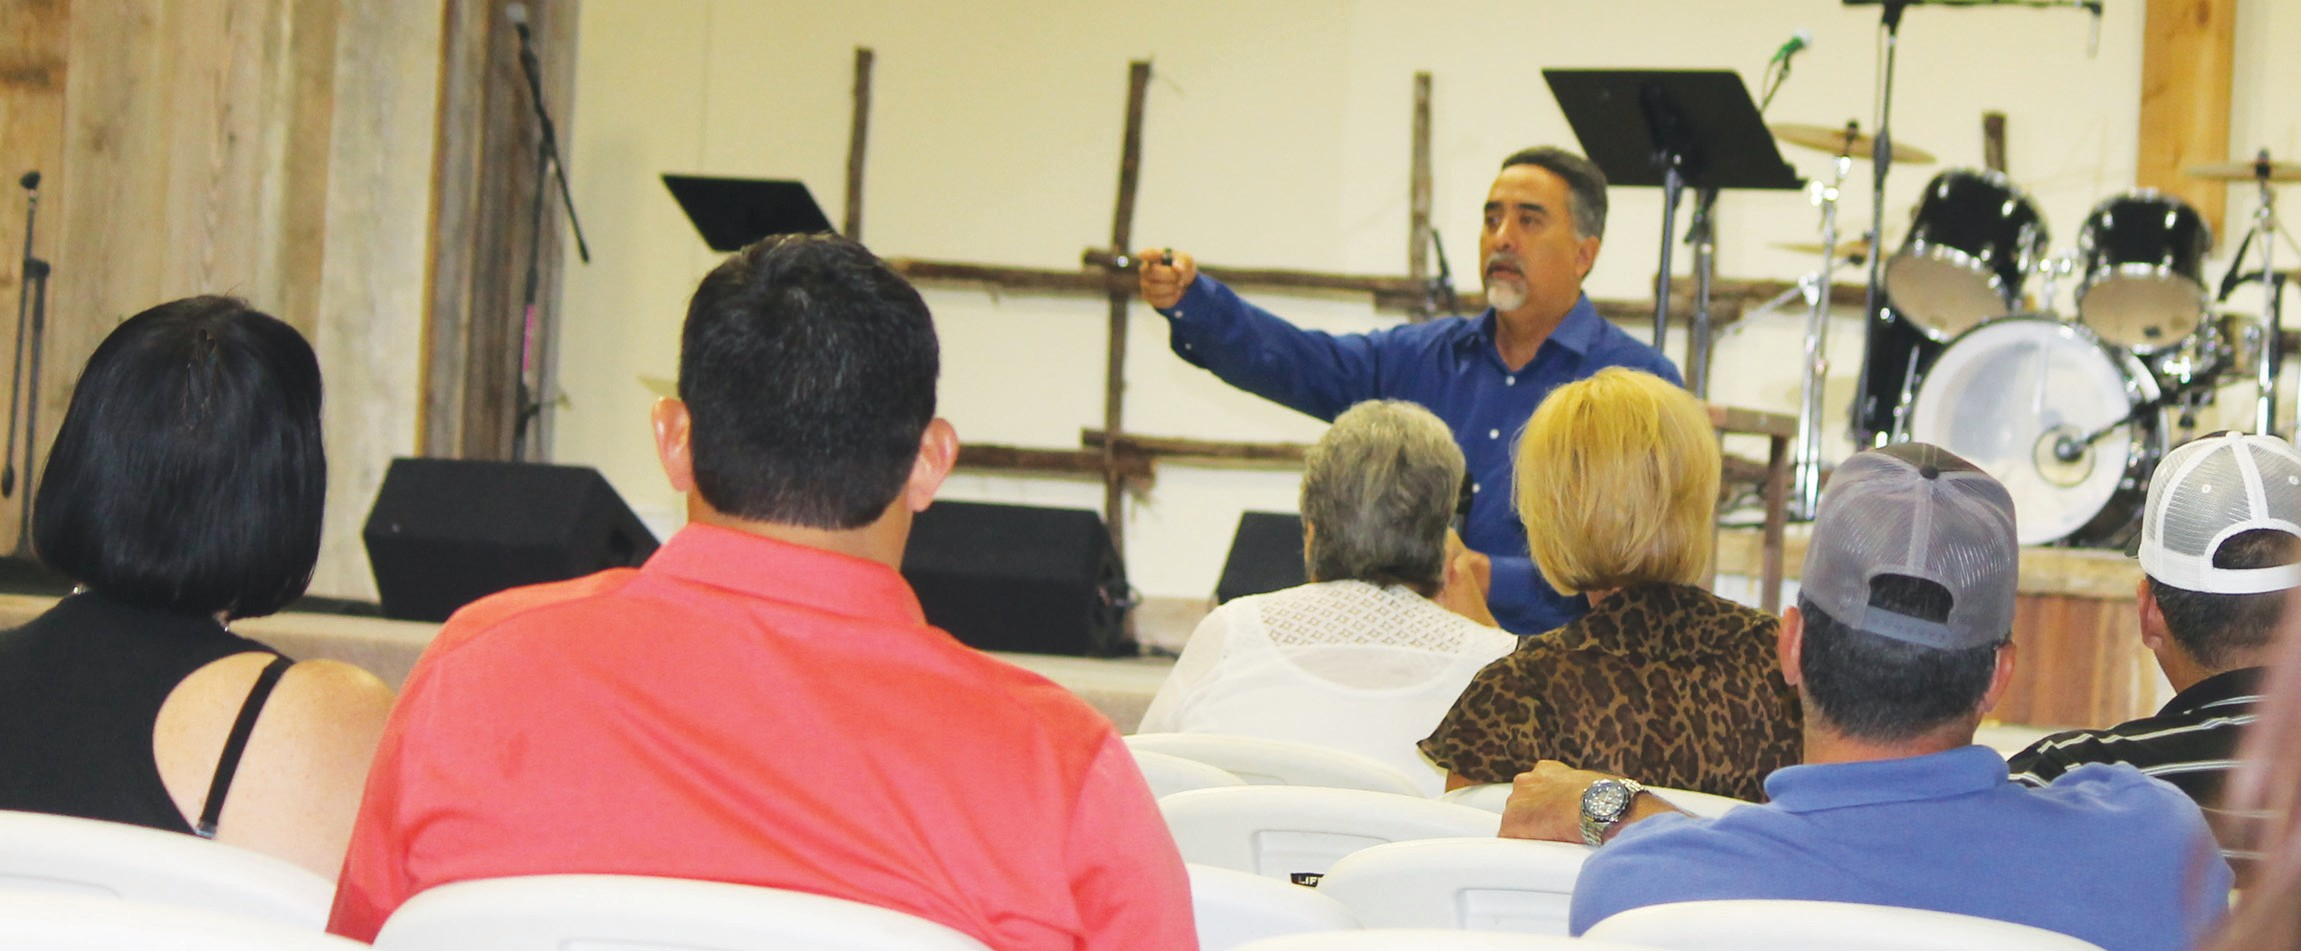 """Lee Fernandez, RN, LP, Customer Relations Representative with AirLIFE was the keynote speaker at the meeting of STEPS, """"A Safer Texas One STEP Closer"""", at Cowboy Fellowship Church on Thursday, September 17."""